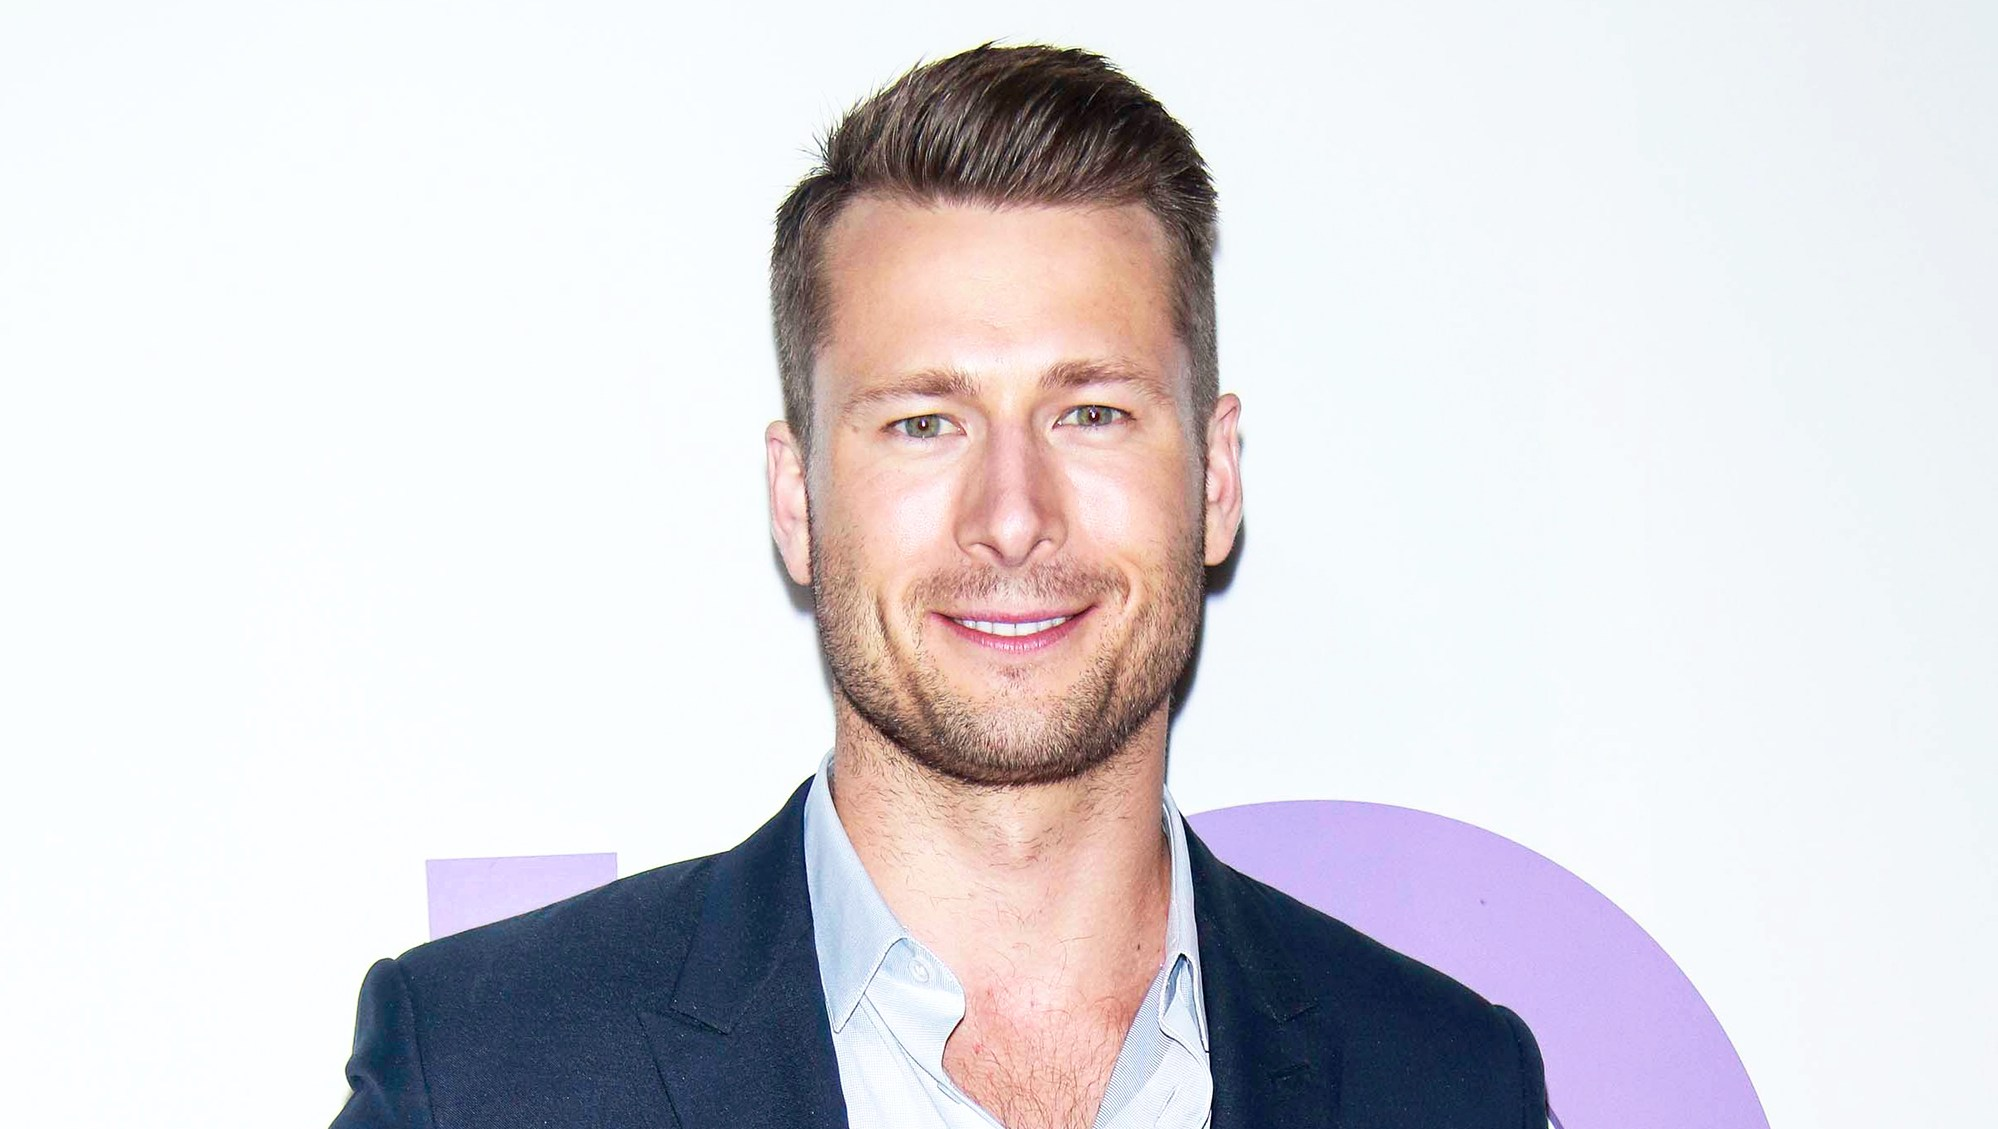 Glen Powell attends the 'Set It Up' New York screening at AMC Lincoln Square Theater on June 12, 2018 in New York City.